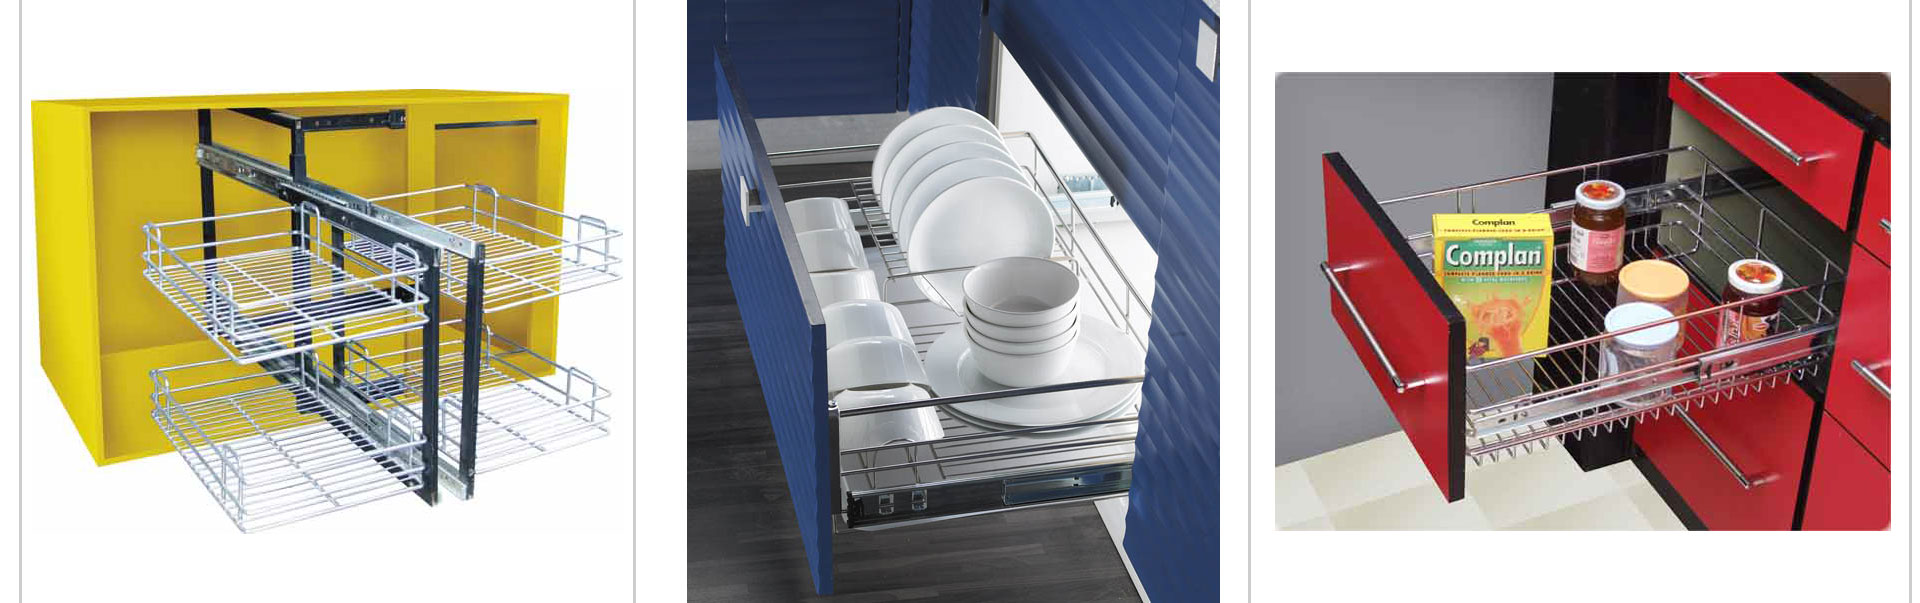 Aaple Kitchen Basket